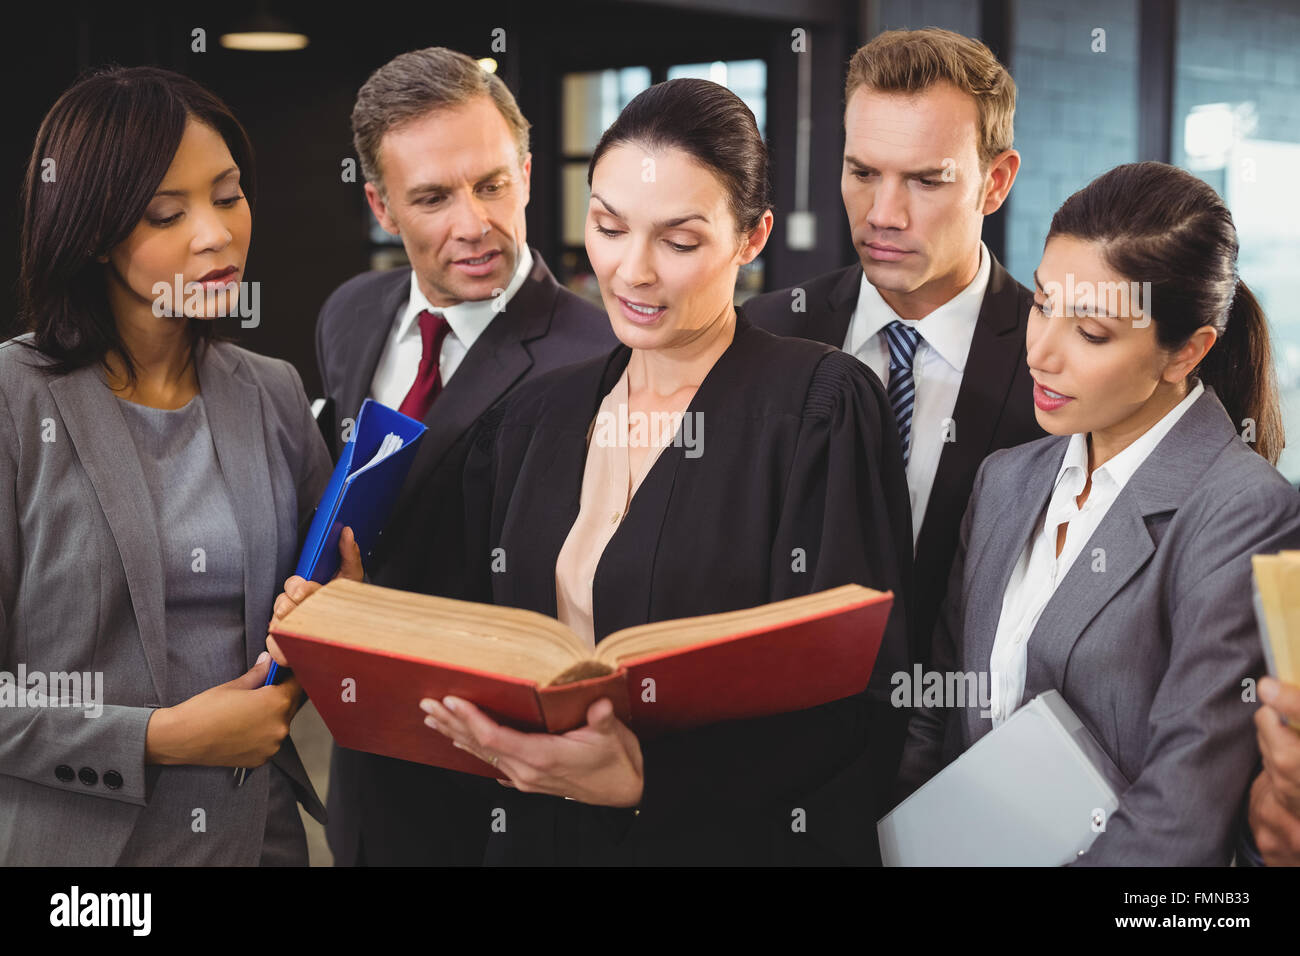 Lawyer reading a law book and interacting with businesspeople - Stock Image